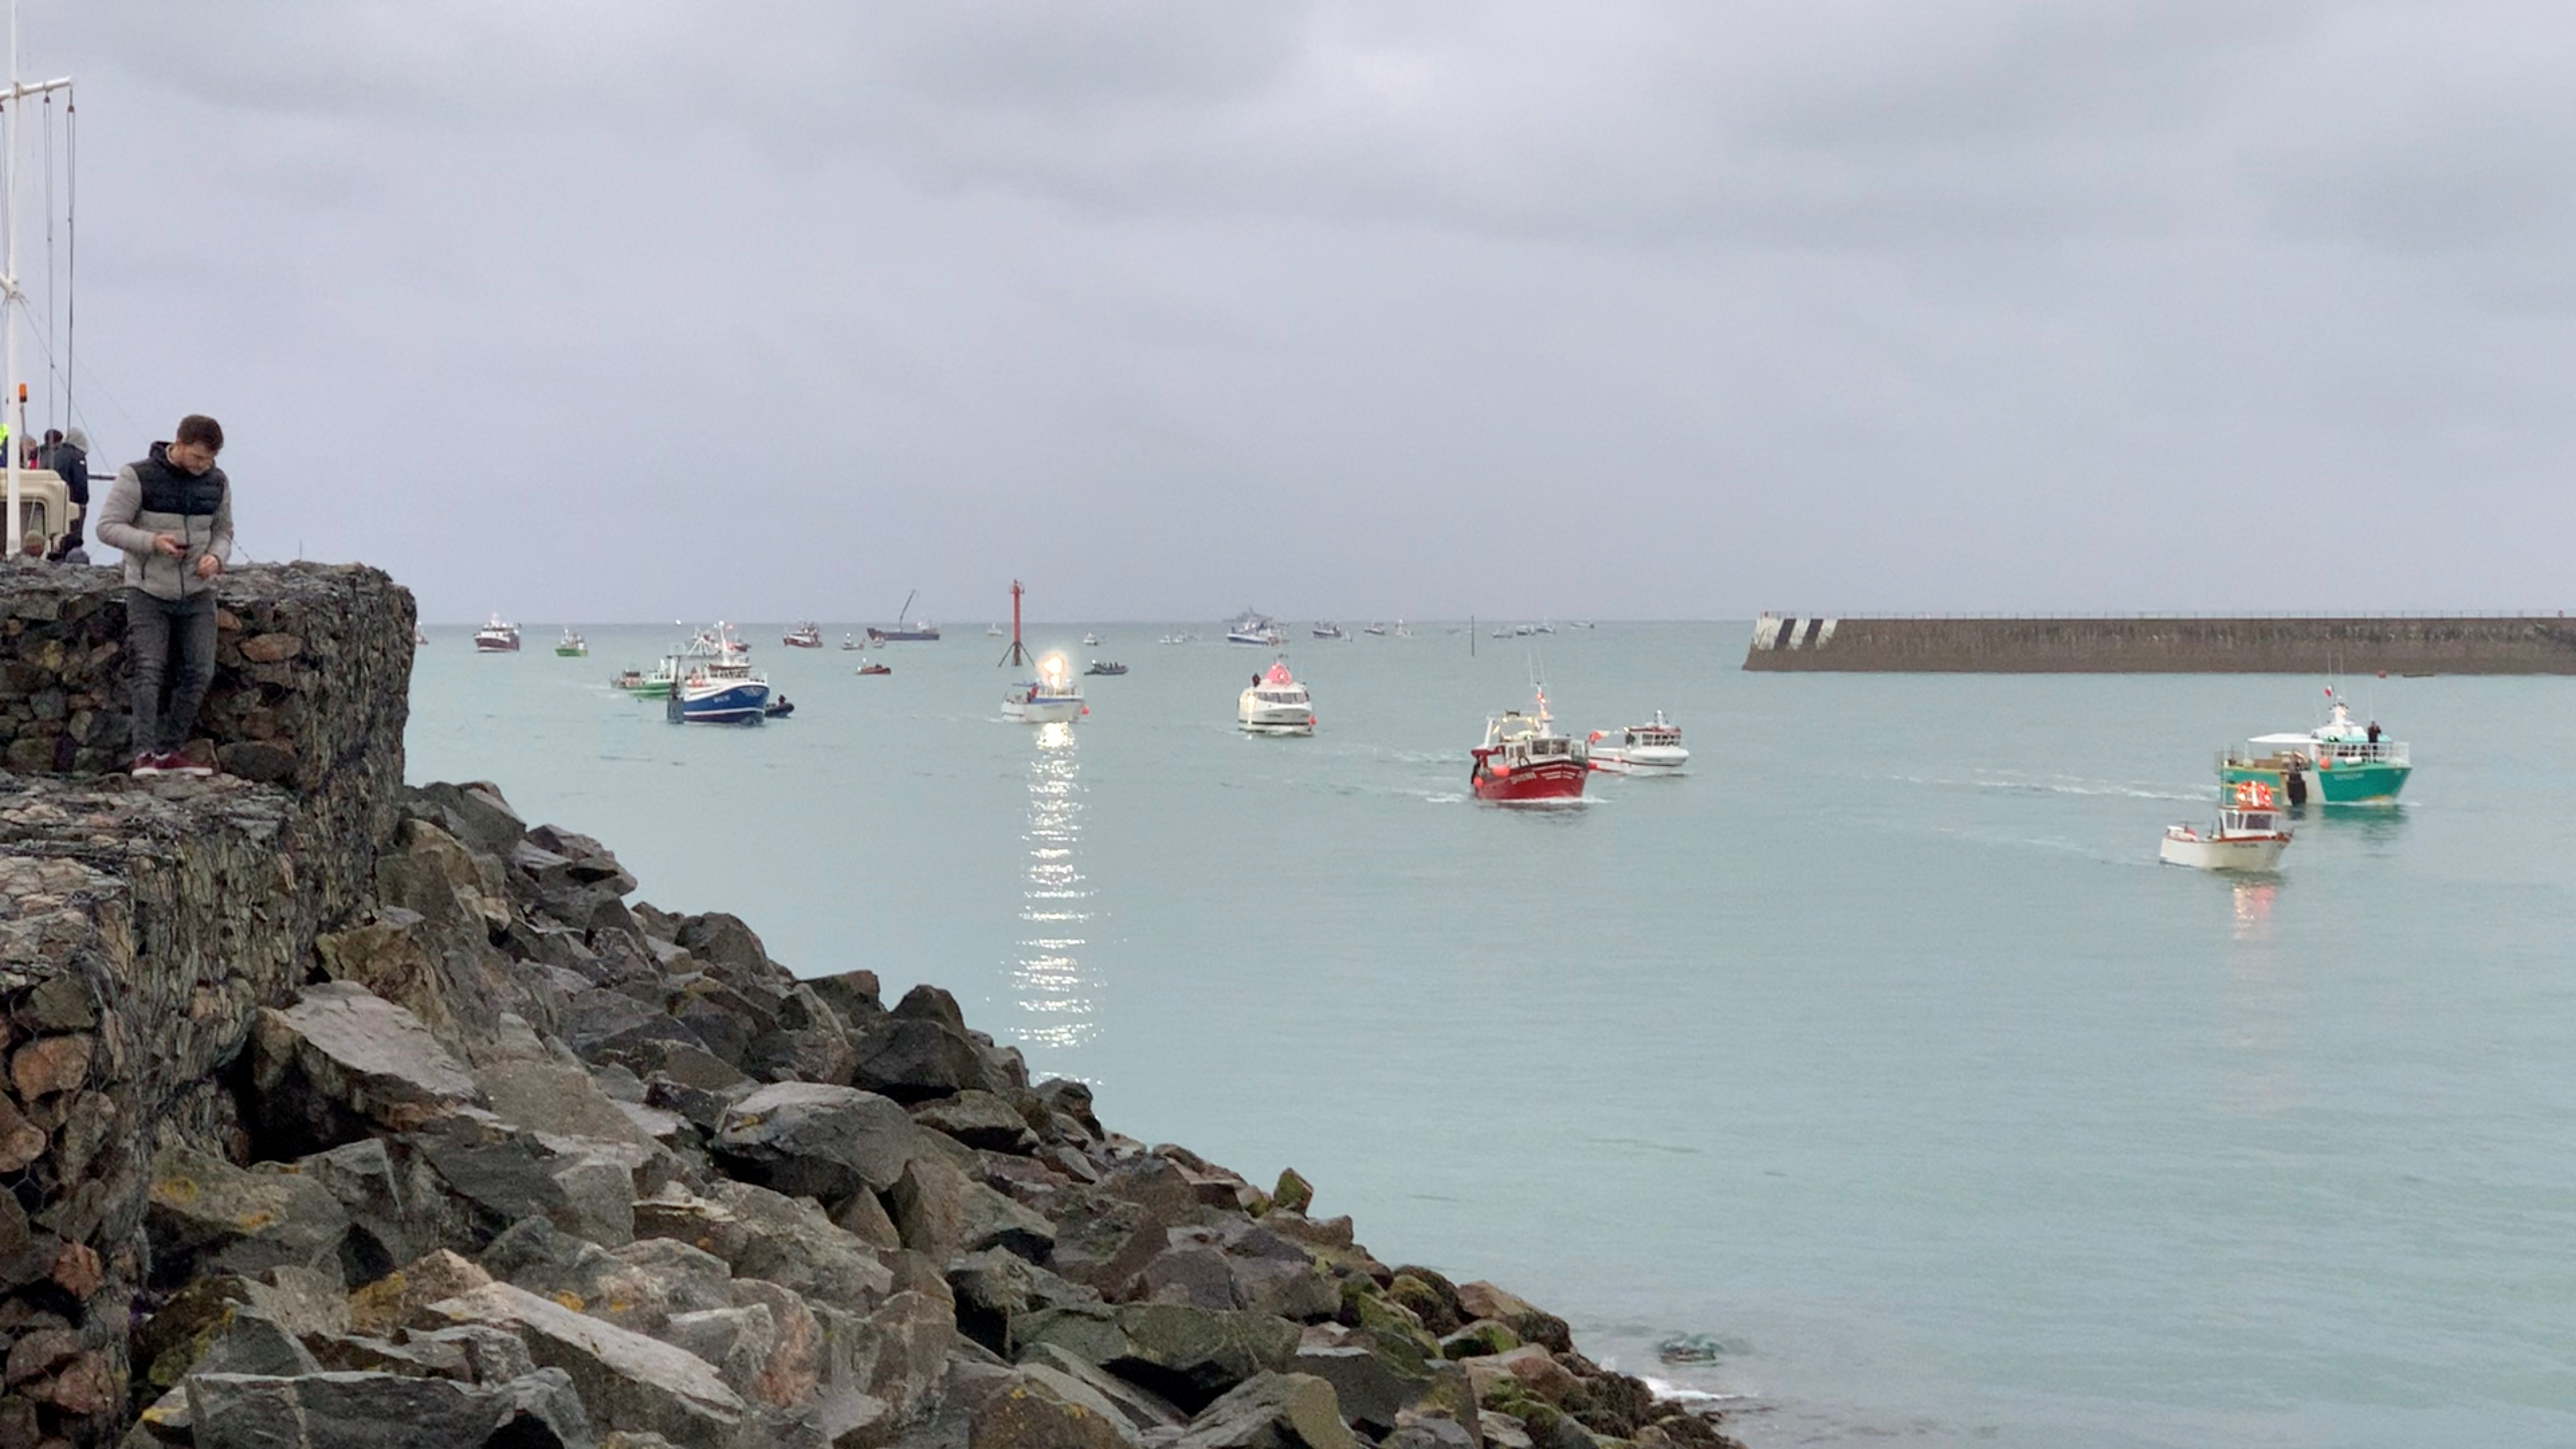 French fishing fleet is seen at the entrance to the harbour in St Helier, Jersey, May 6, 2021 in this still image from a social media video. Marc Le Cornu/via REUTERS